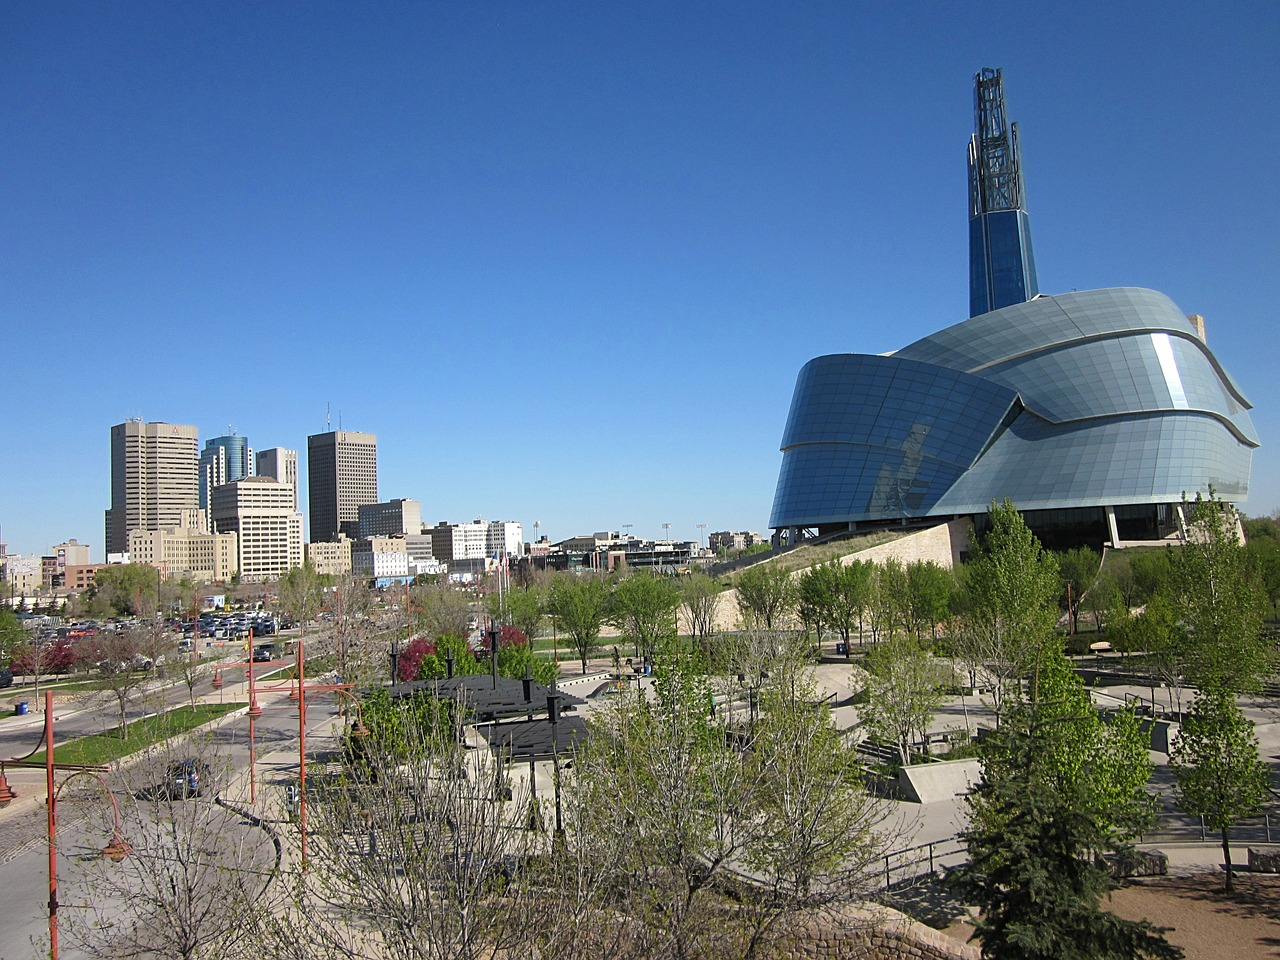 Canadian Museum for Human Rights, Winnipeg, Manitoba